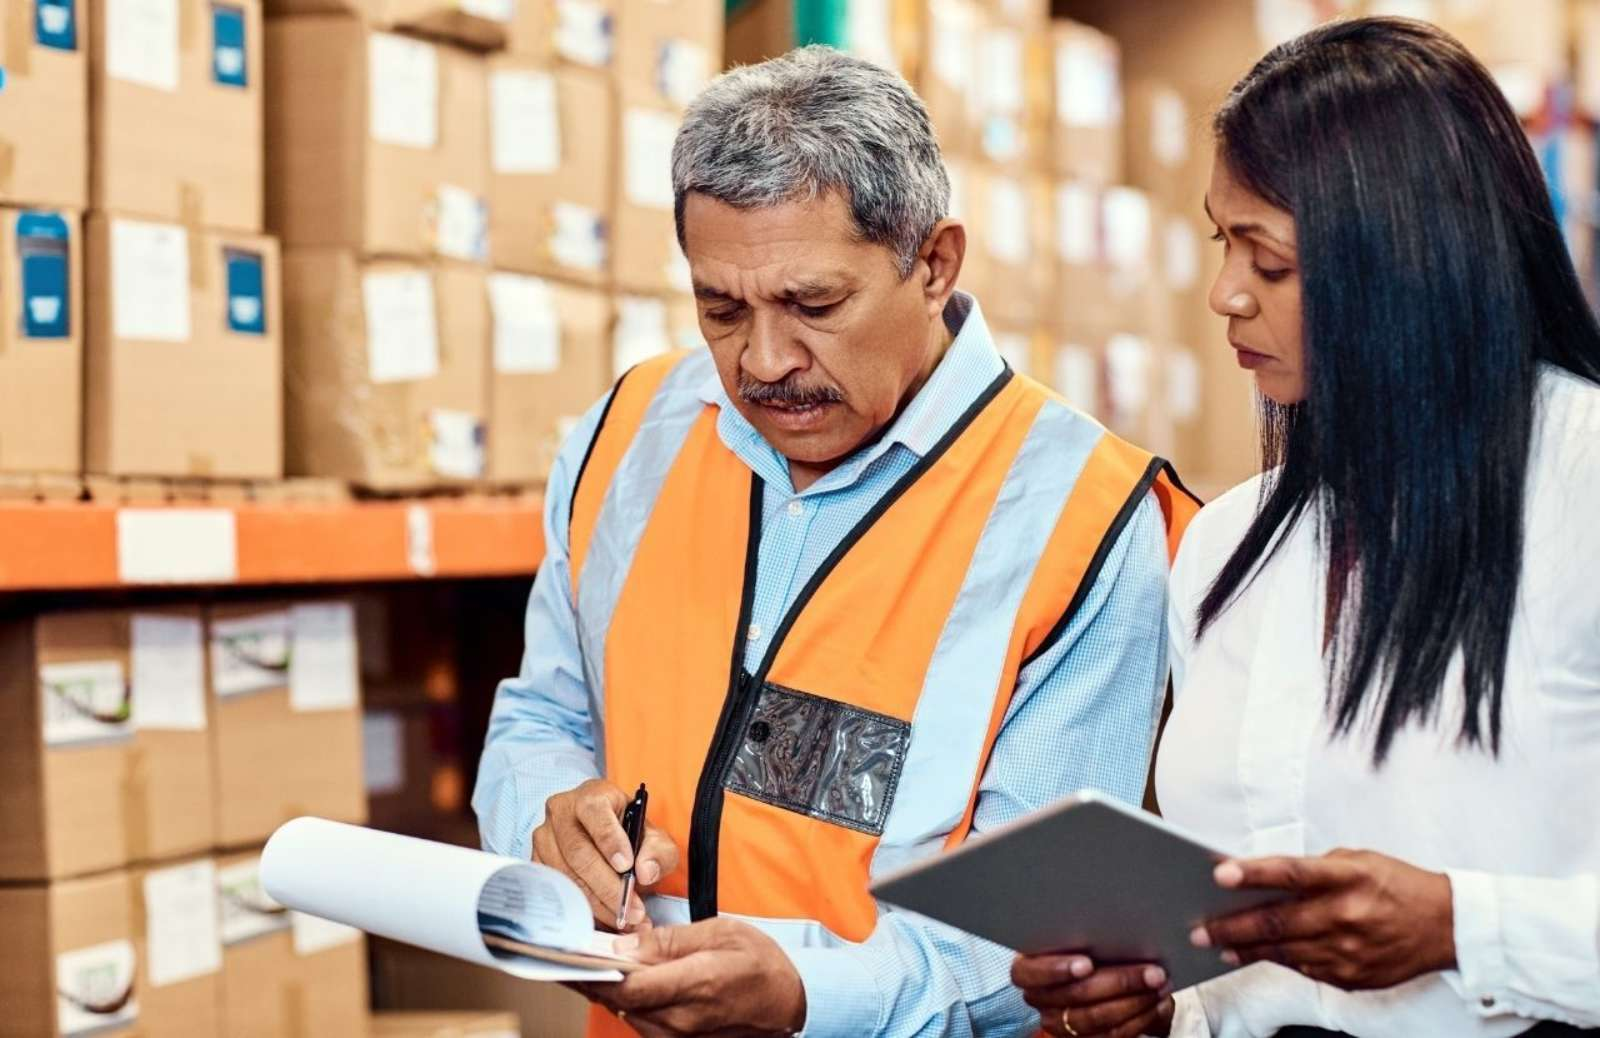 Warehouse man and woman holding tablet and paper and discussing their contents